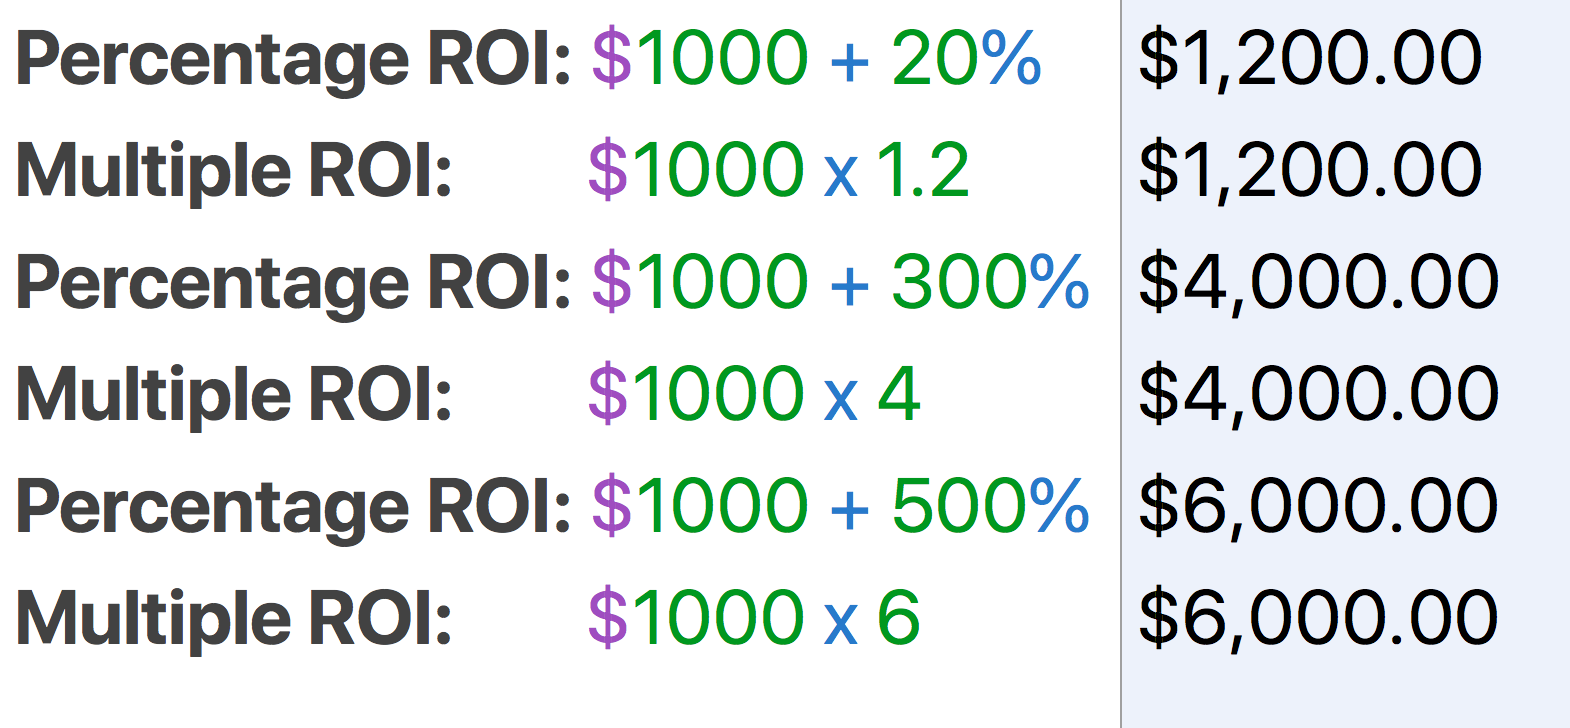 percentage-multiple-roi